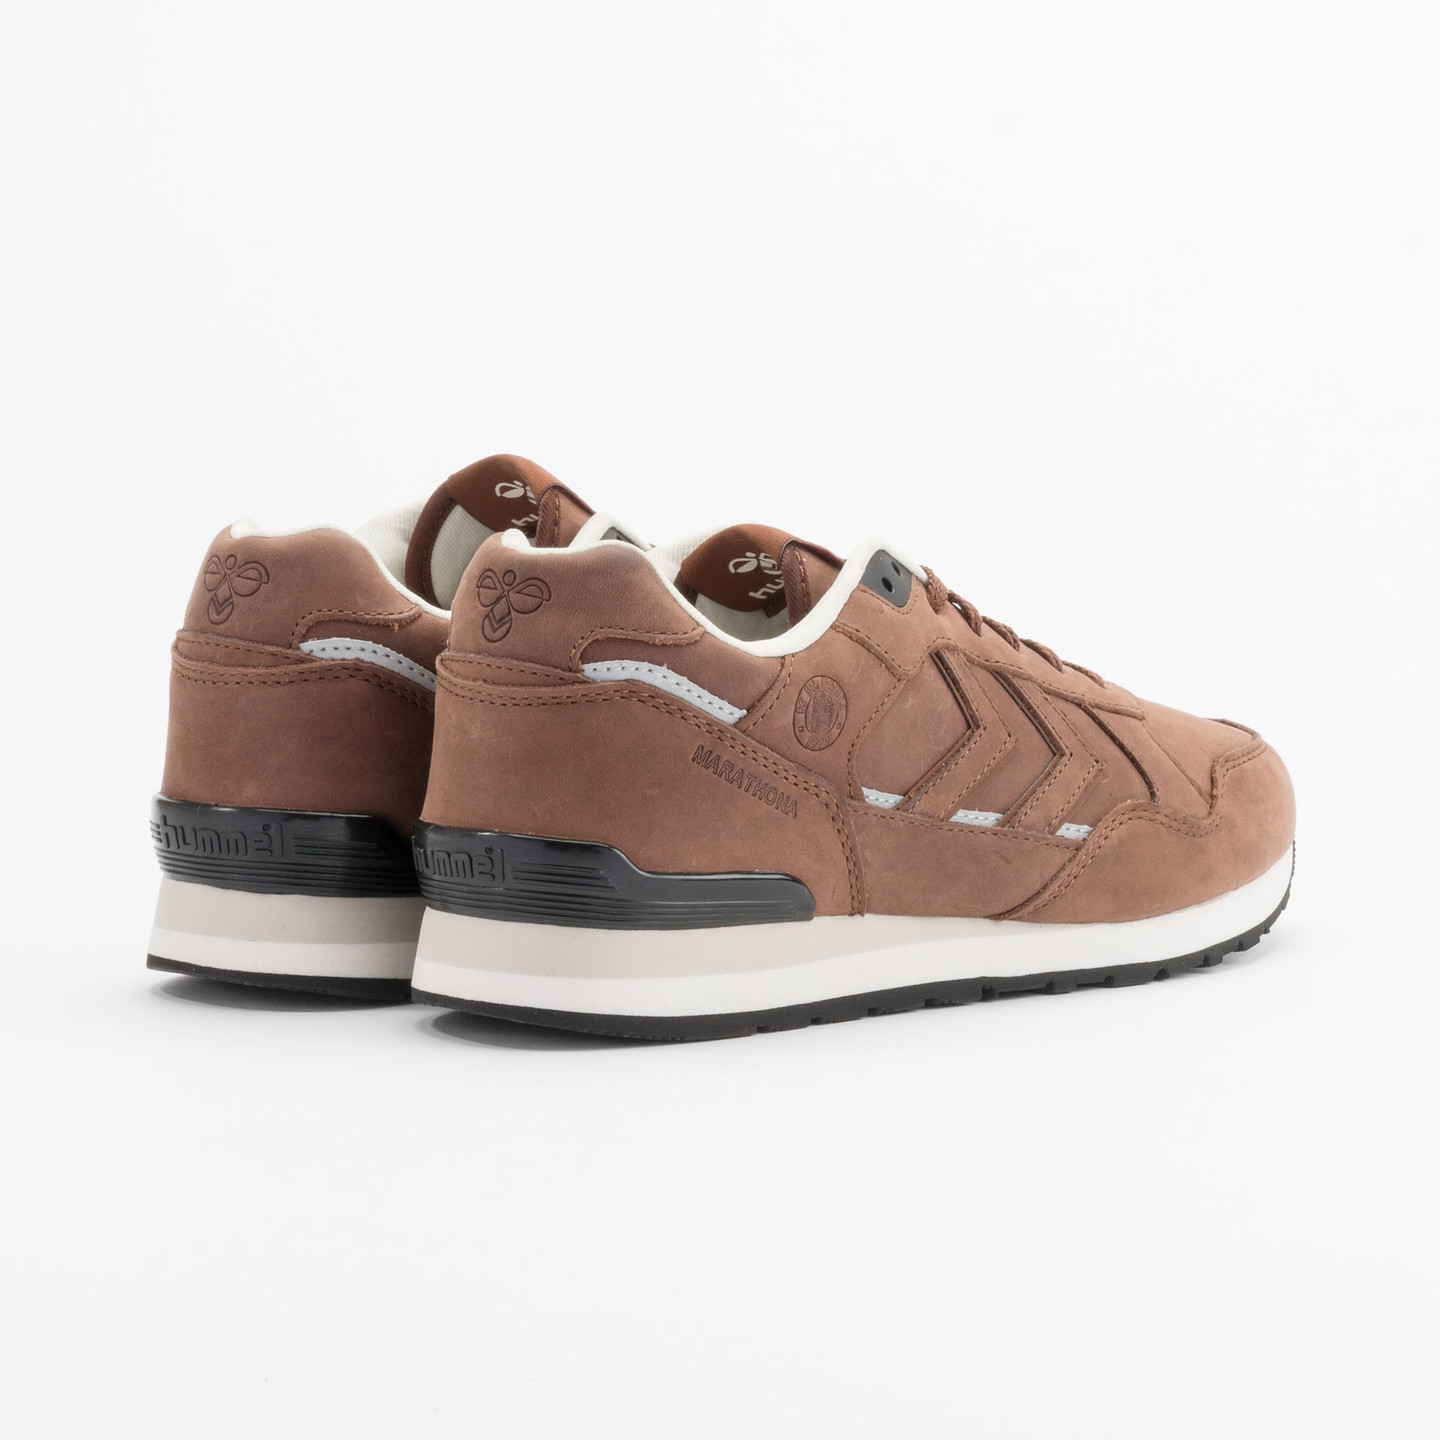 Hummel Marathona Low x St.Pauli Dark Brown 63-821-8225-44